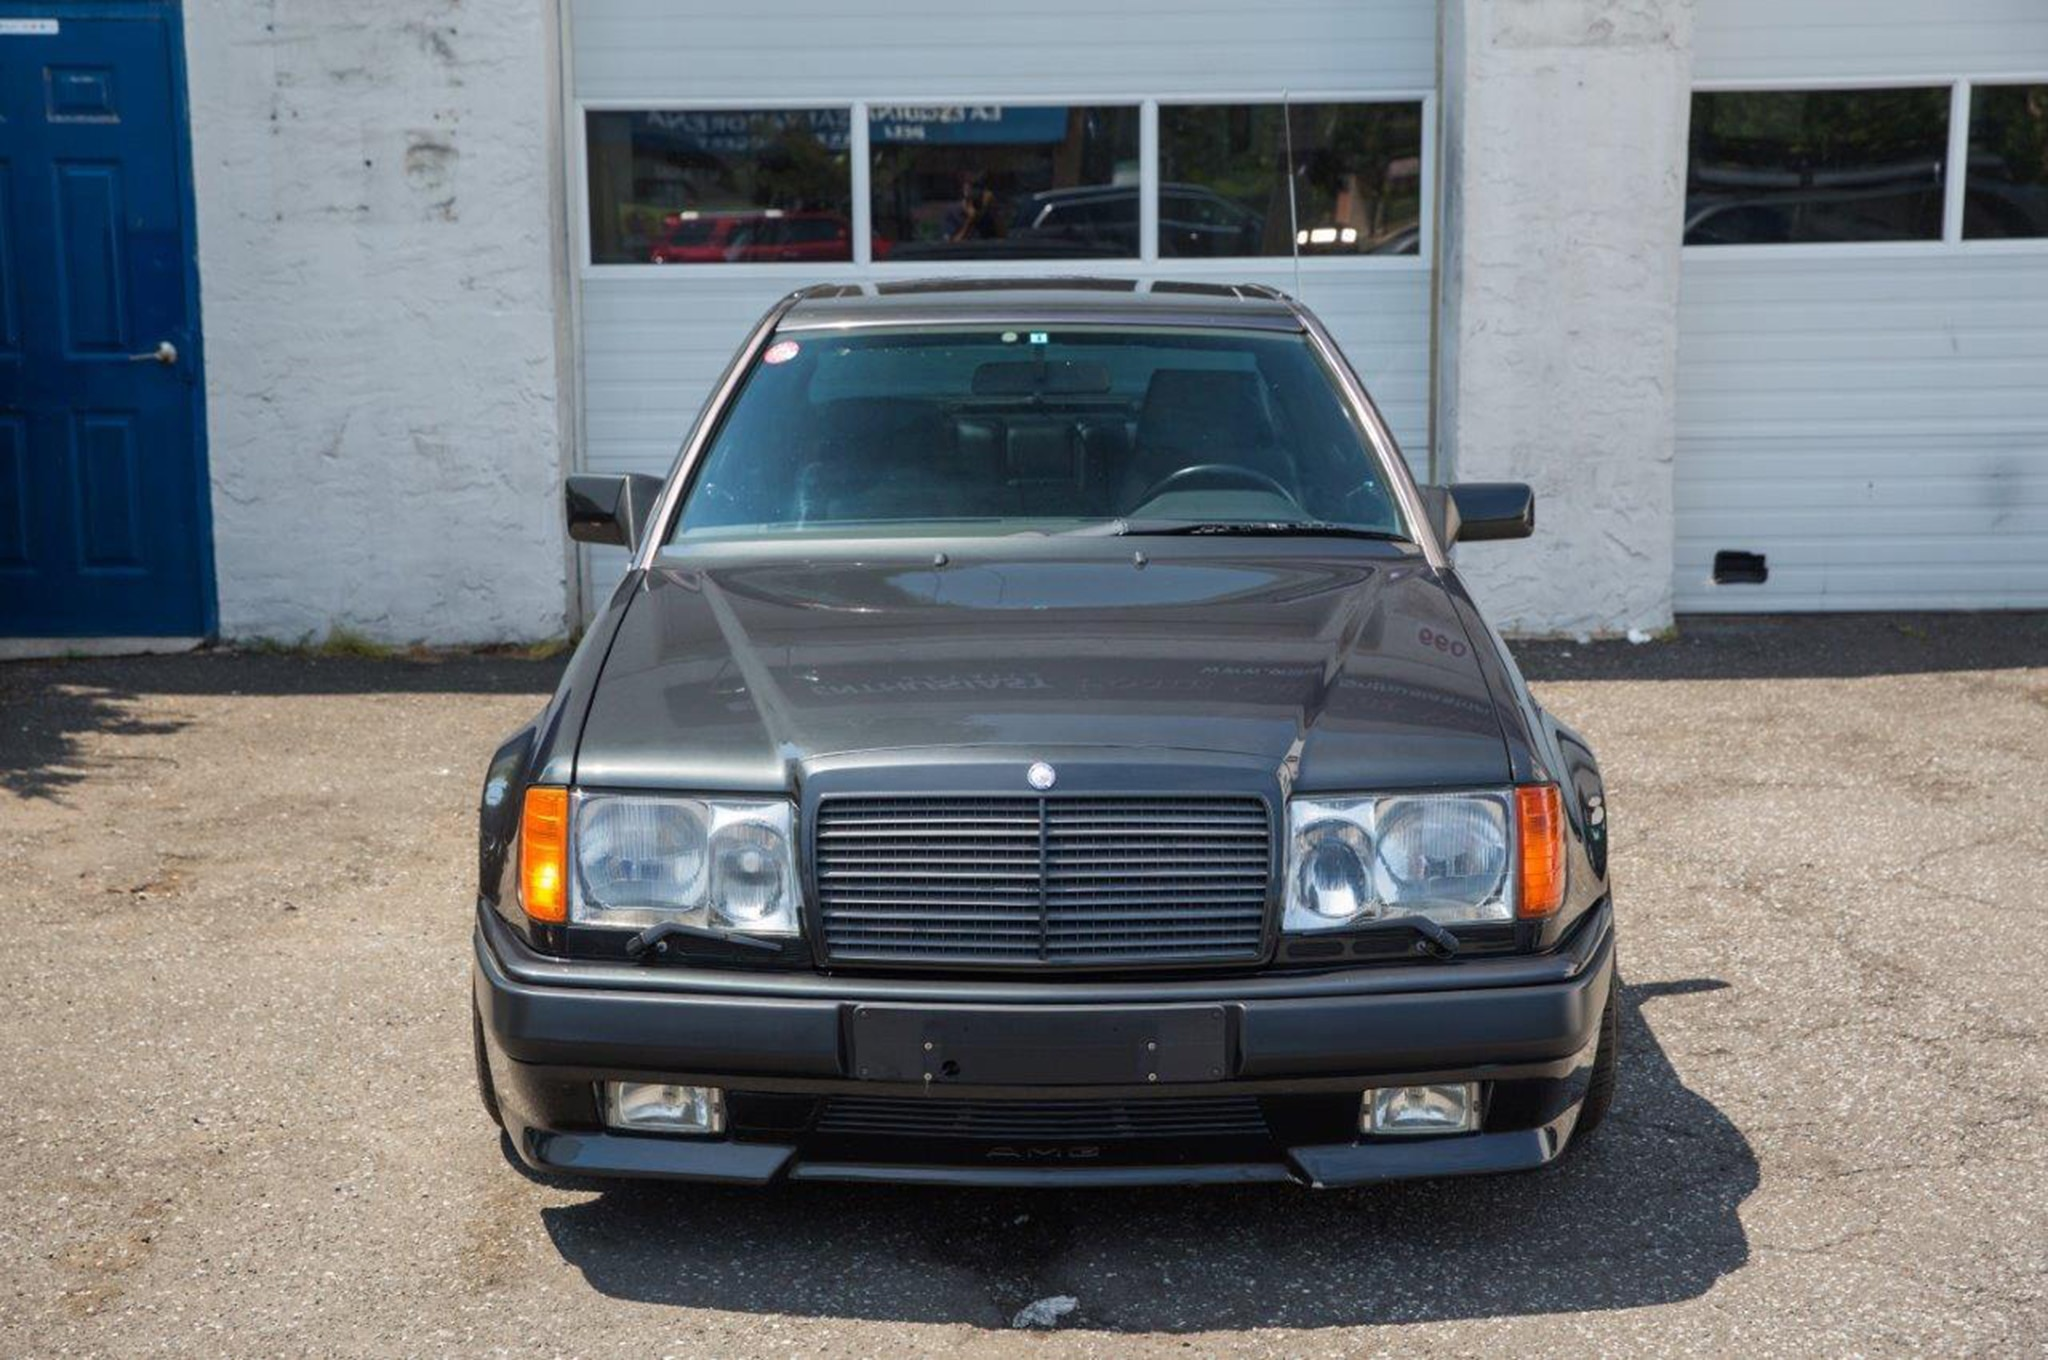 Rare 1990 Mercedes-Benz 300CE 3.4 AMG Up for Sale on eBay